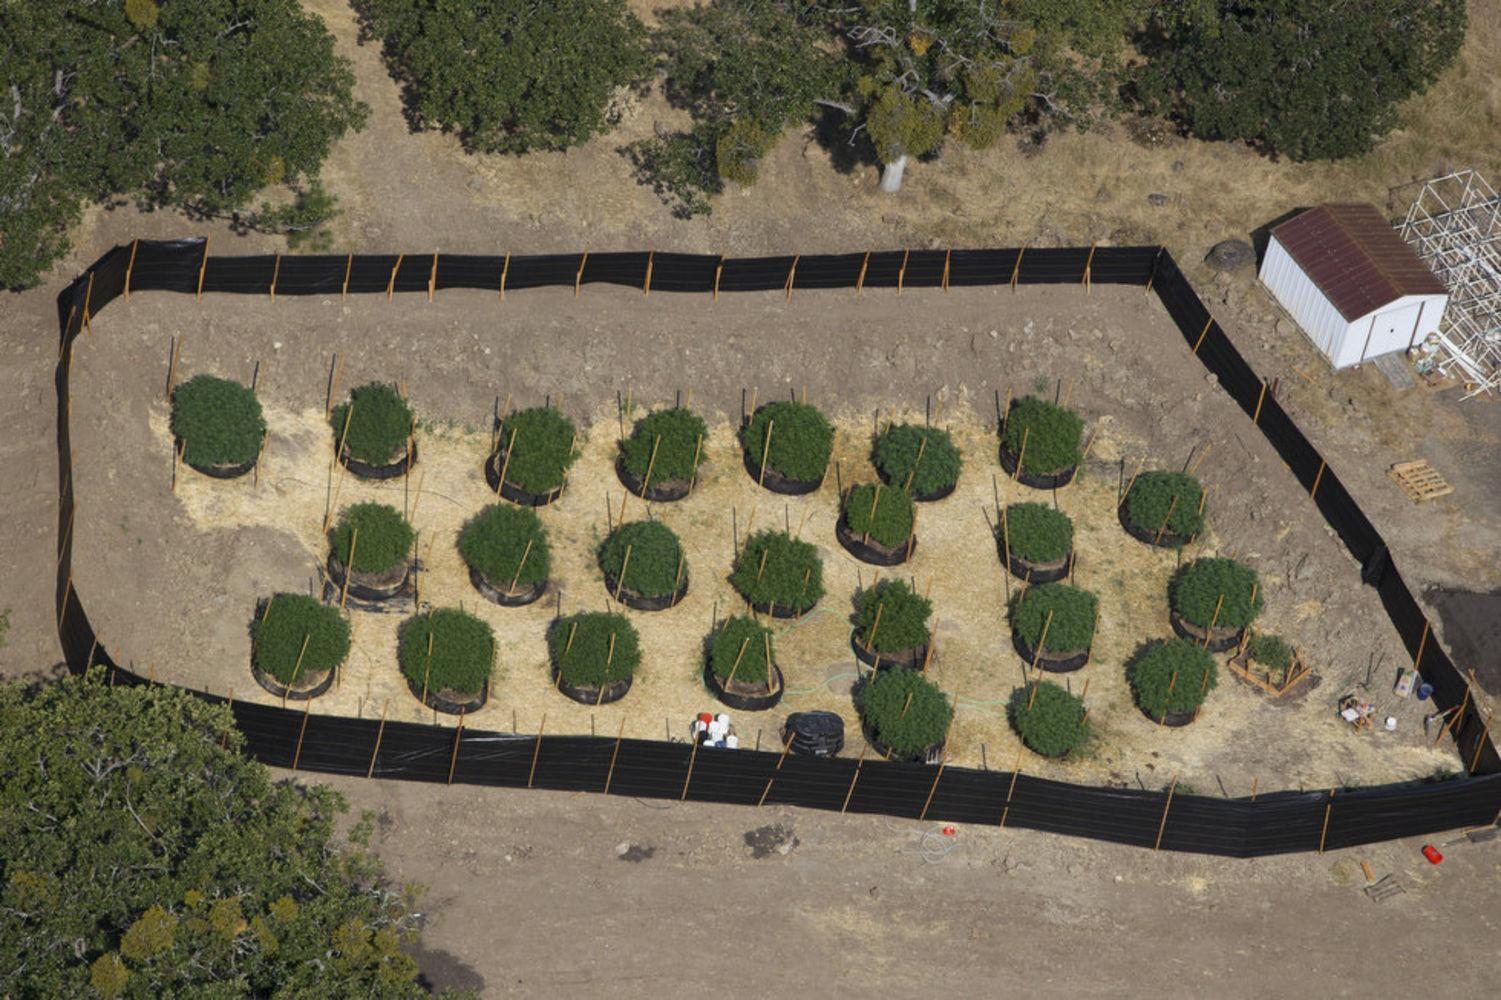 Image of an Oregon legal outdoor medical marijuana grow.